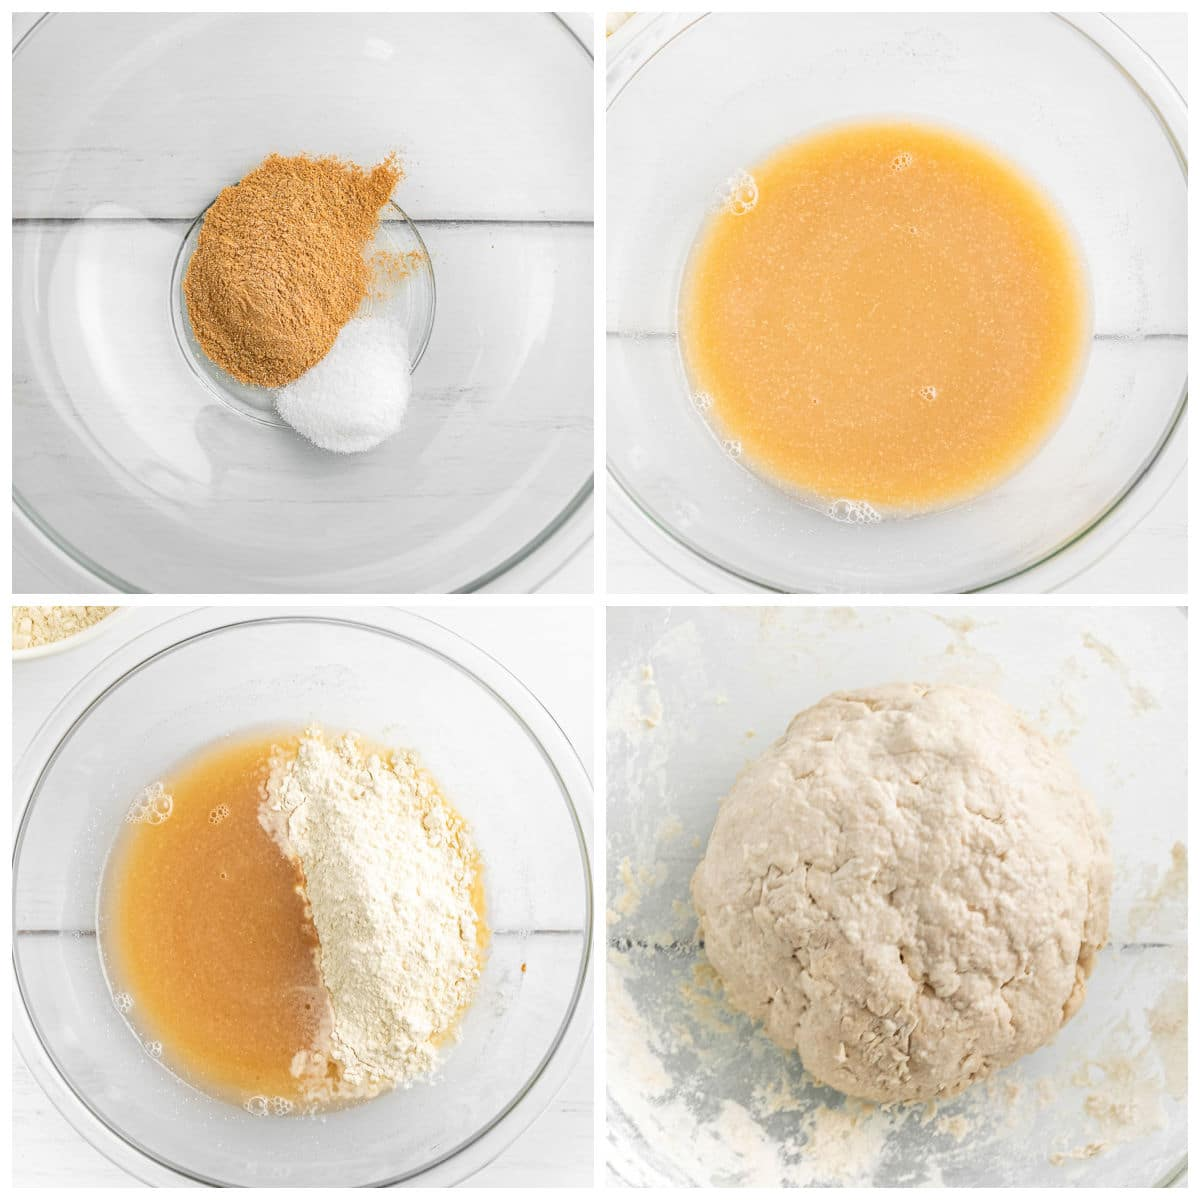 glass bowl with flour and yeast being mixed into bread dough